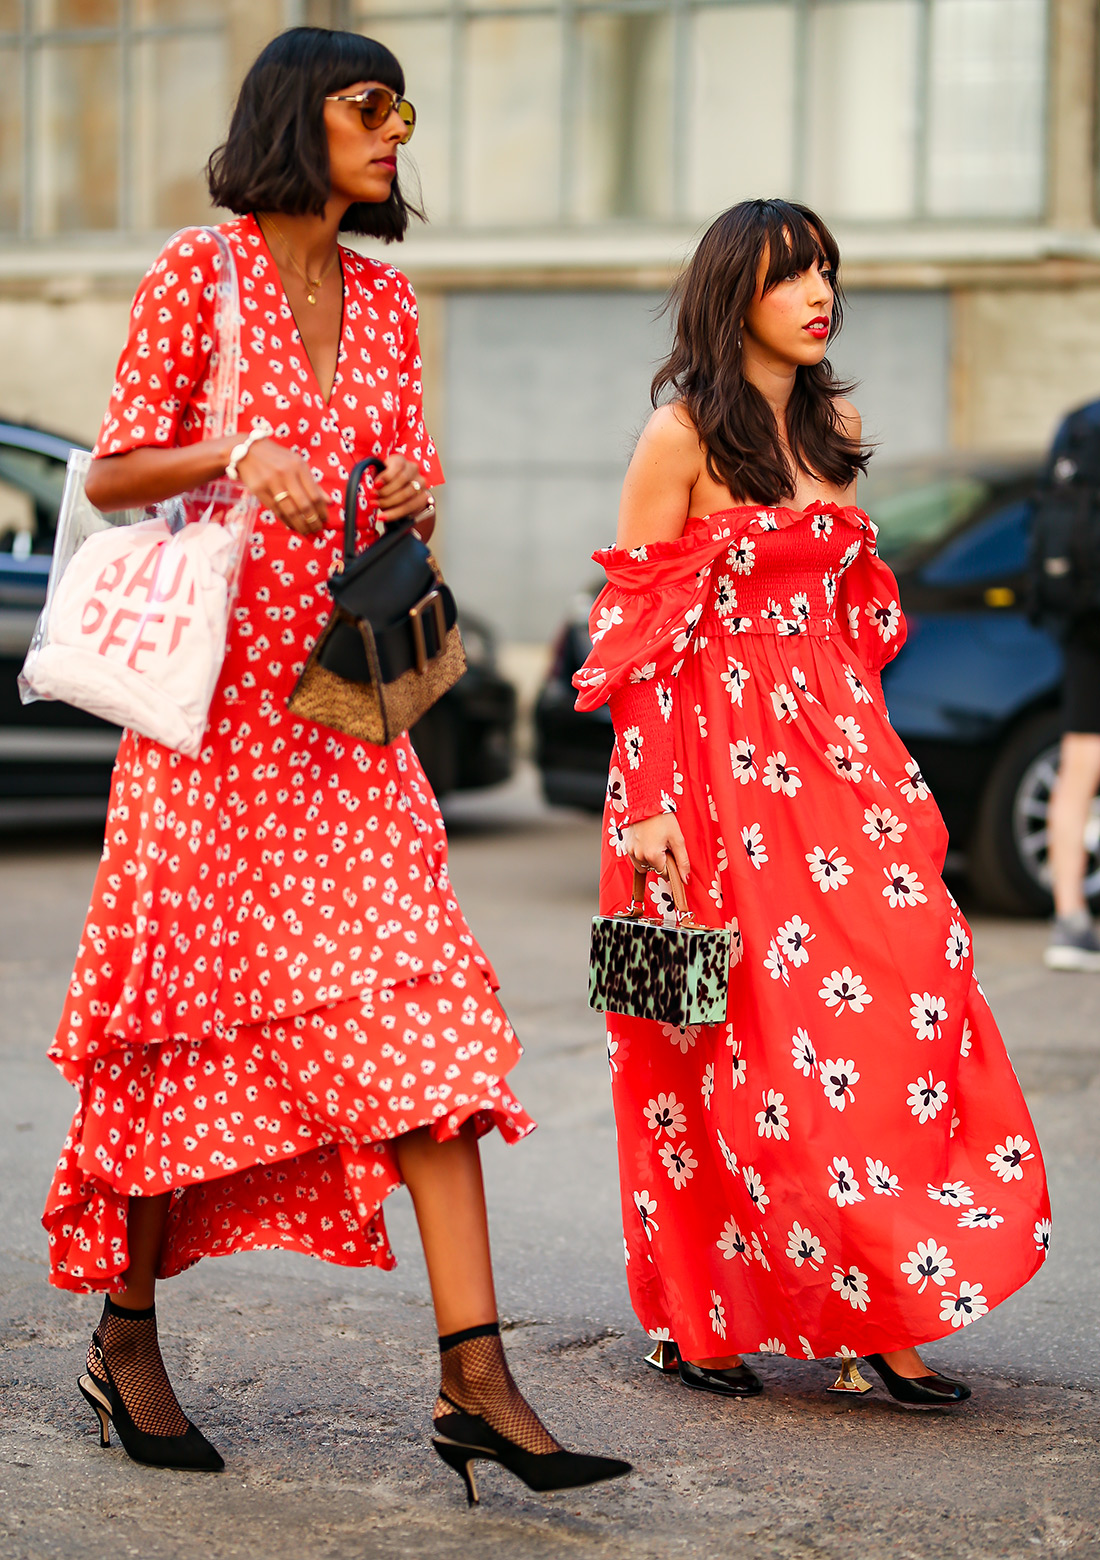 best floral dresses fashion spring summer season special occasion dresses copenhagen fashion week stylish pretty fashion girls